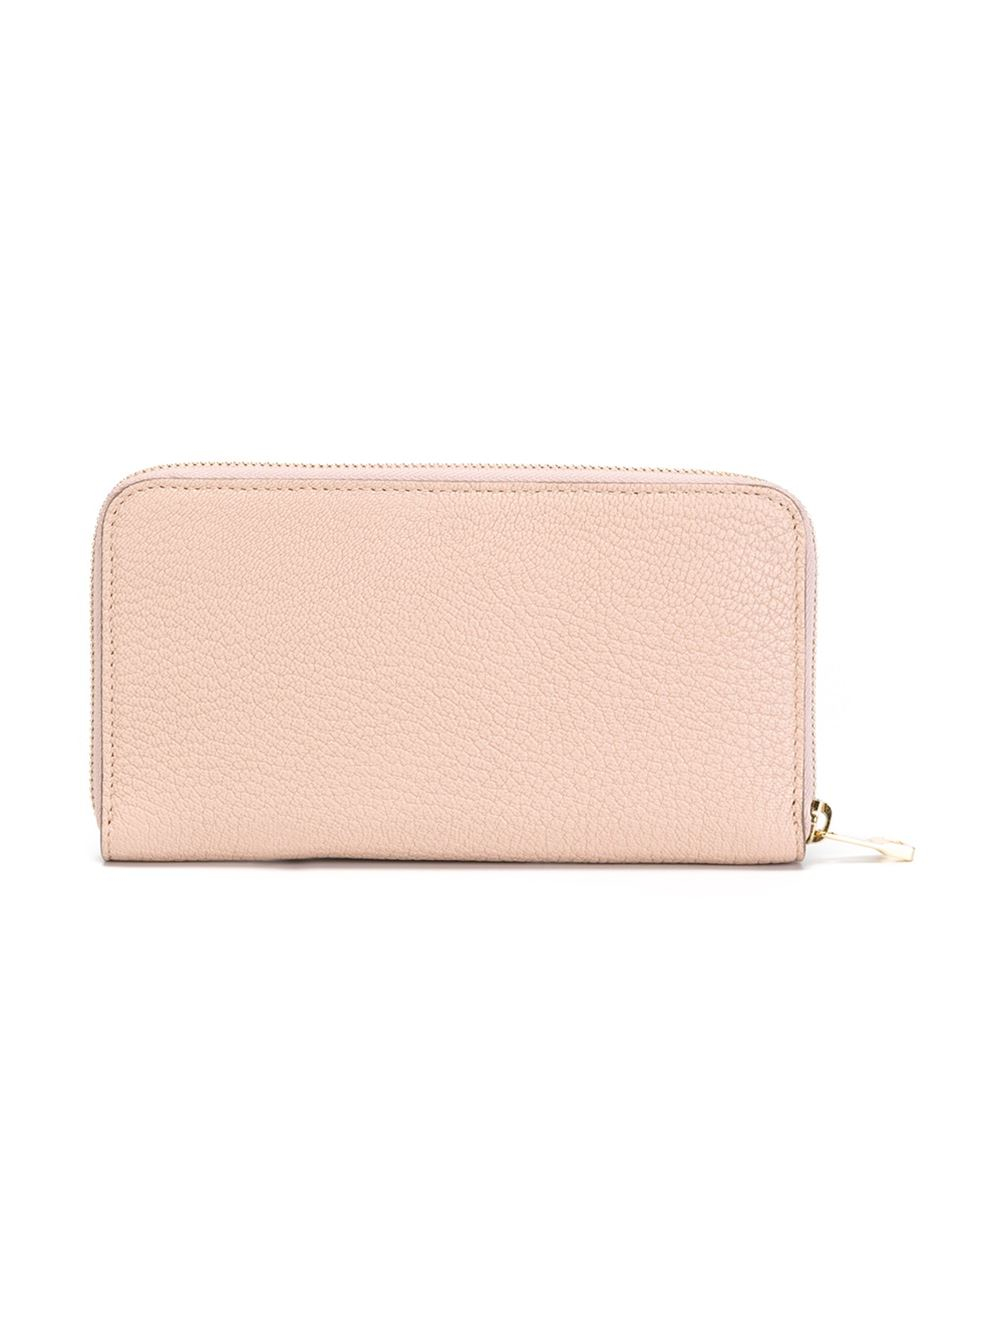 chloe replica handbag - Chlo�� 'georgia' Wallet in Pink (pink & purple) | Lyst